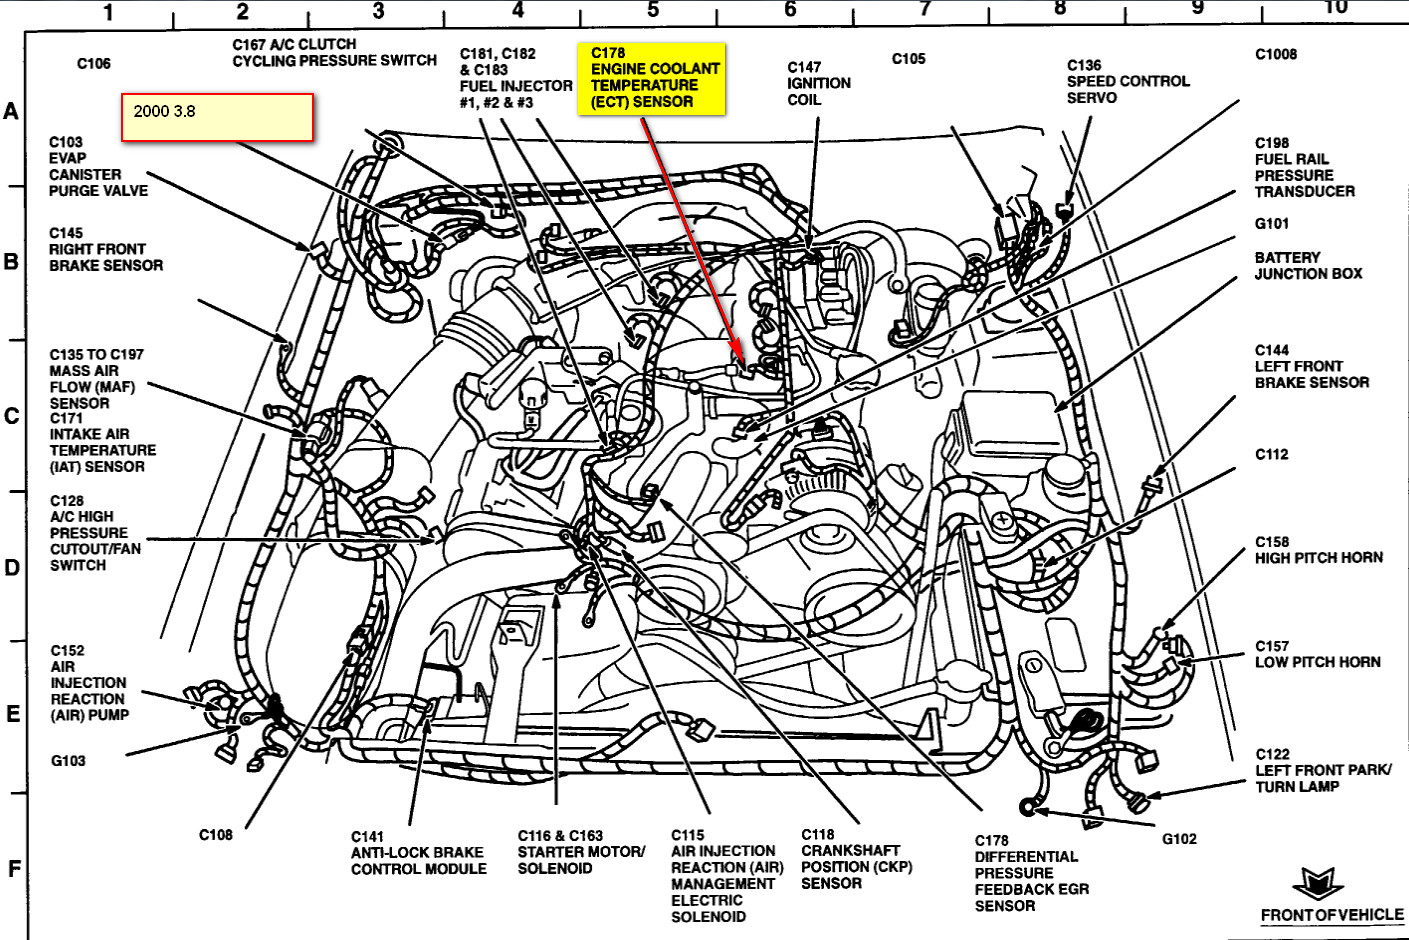 2001 Chrysler Town And Country Cooling Fan Wiring Diagram Temperature 3800 Engine Sensor Location Free